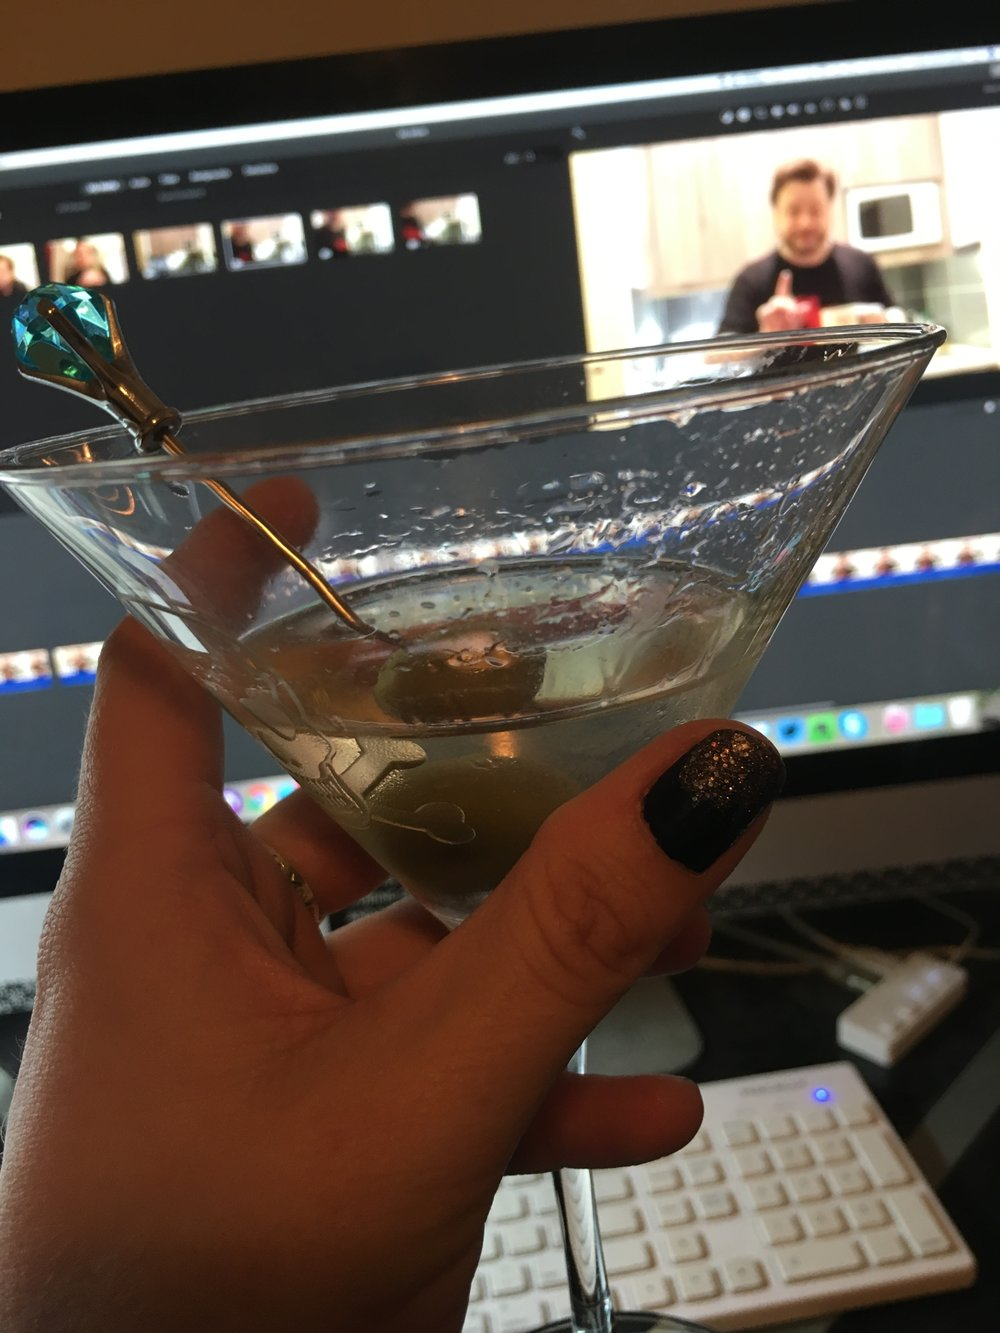 P.S. This is how editing happens. It all comes full circle.